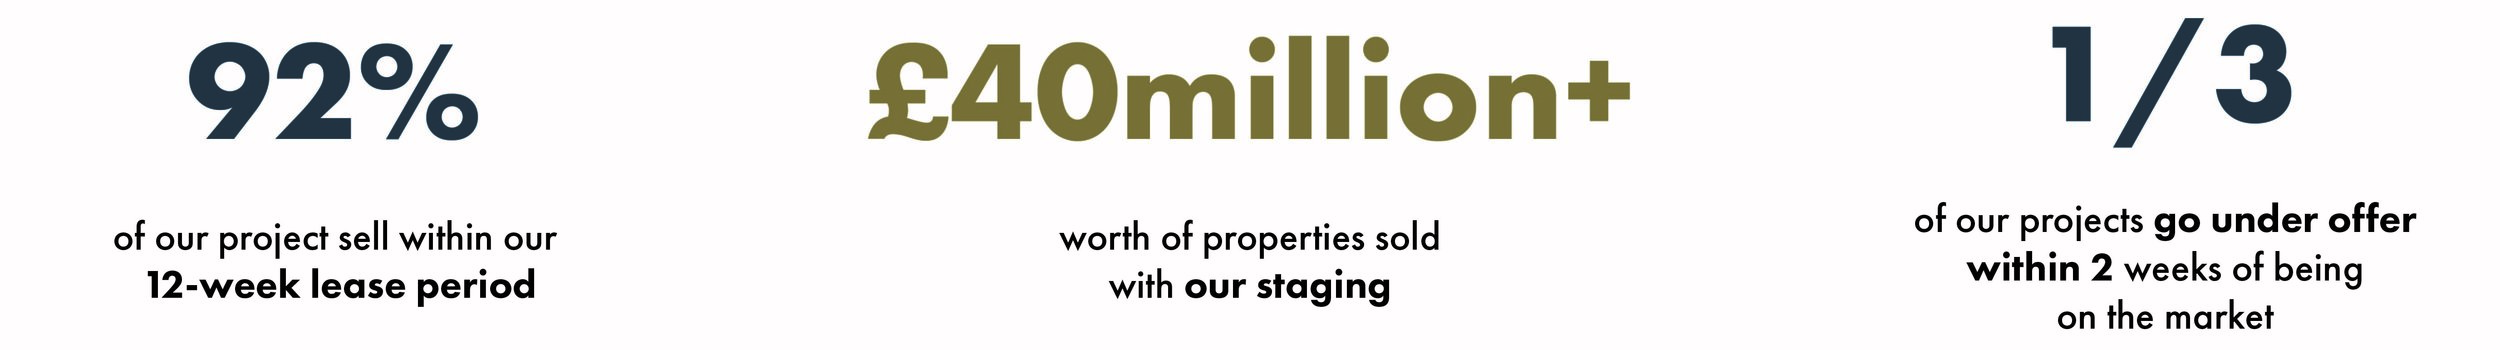 Yohan May Interiors secures over 40£ million of sold properties with Home Staging